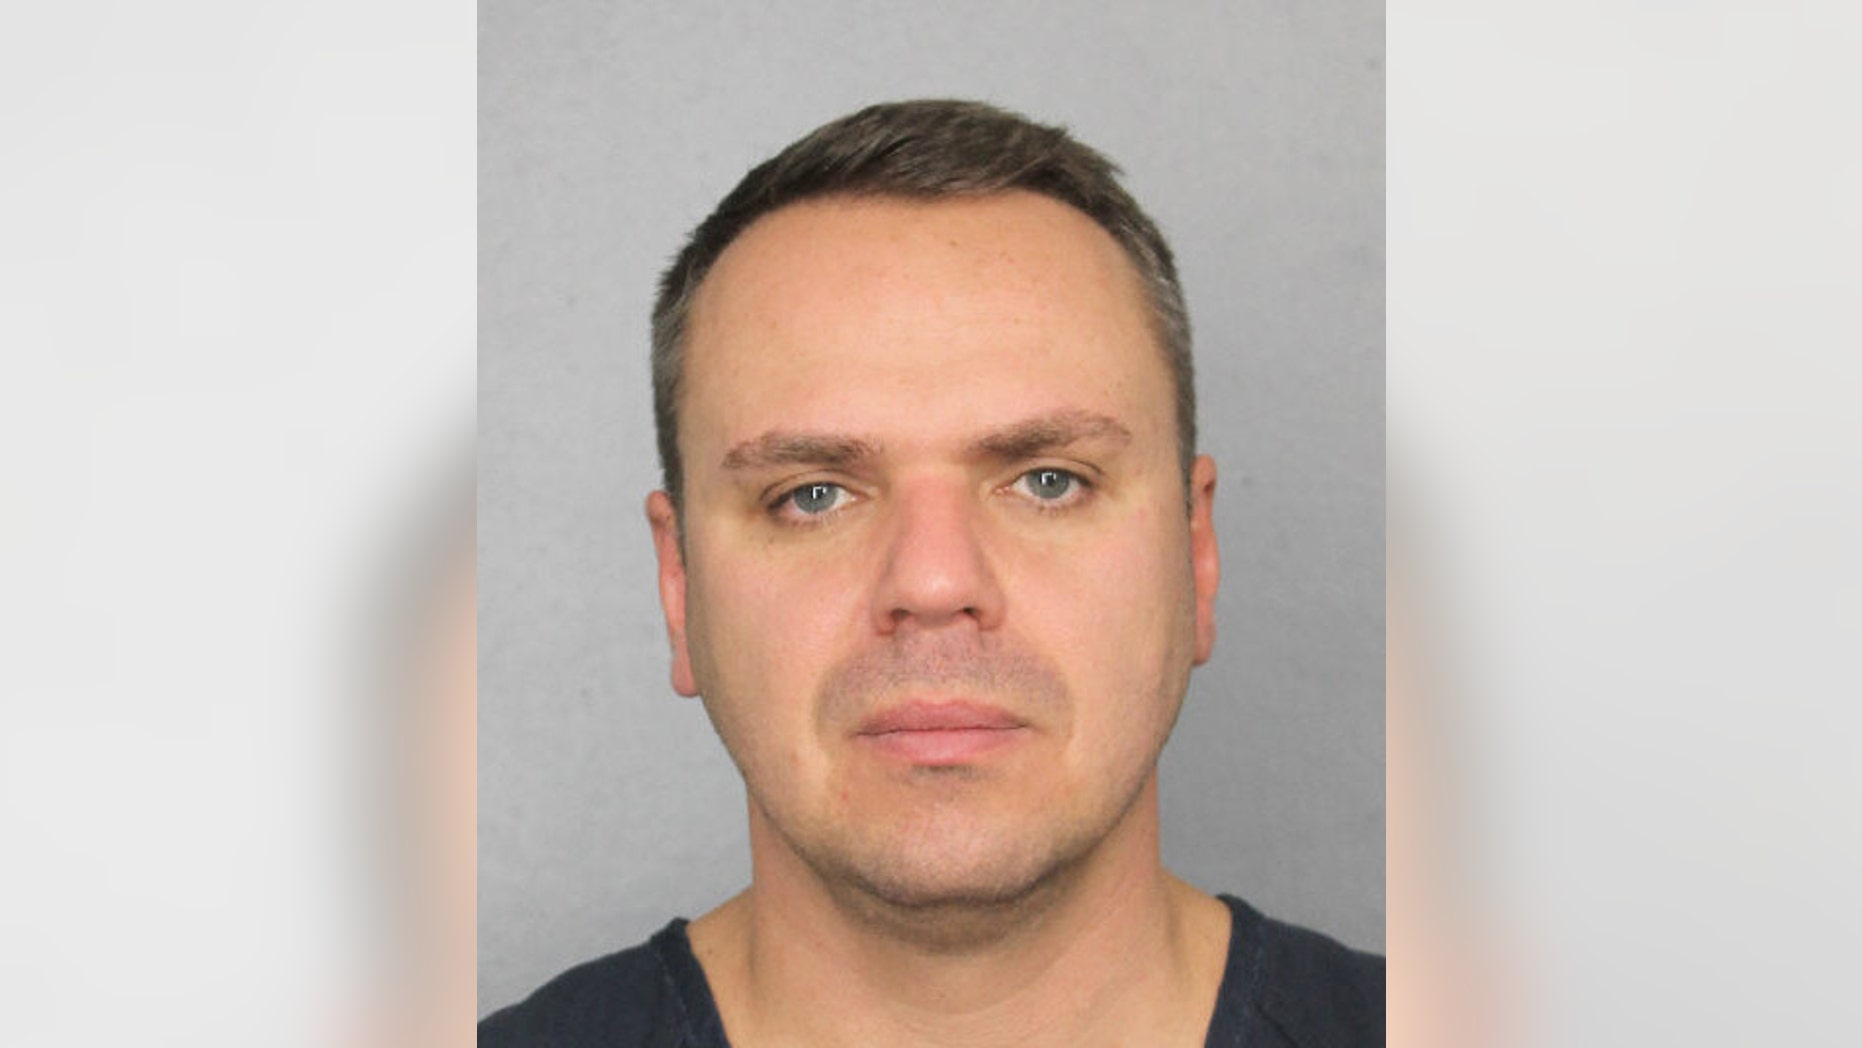 Felix Filenger, 41, was sentenced to 6 1/2 years in prison for running a massive $23 million auto insurance fraud scheme.